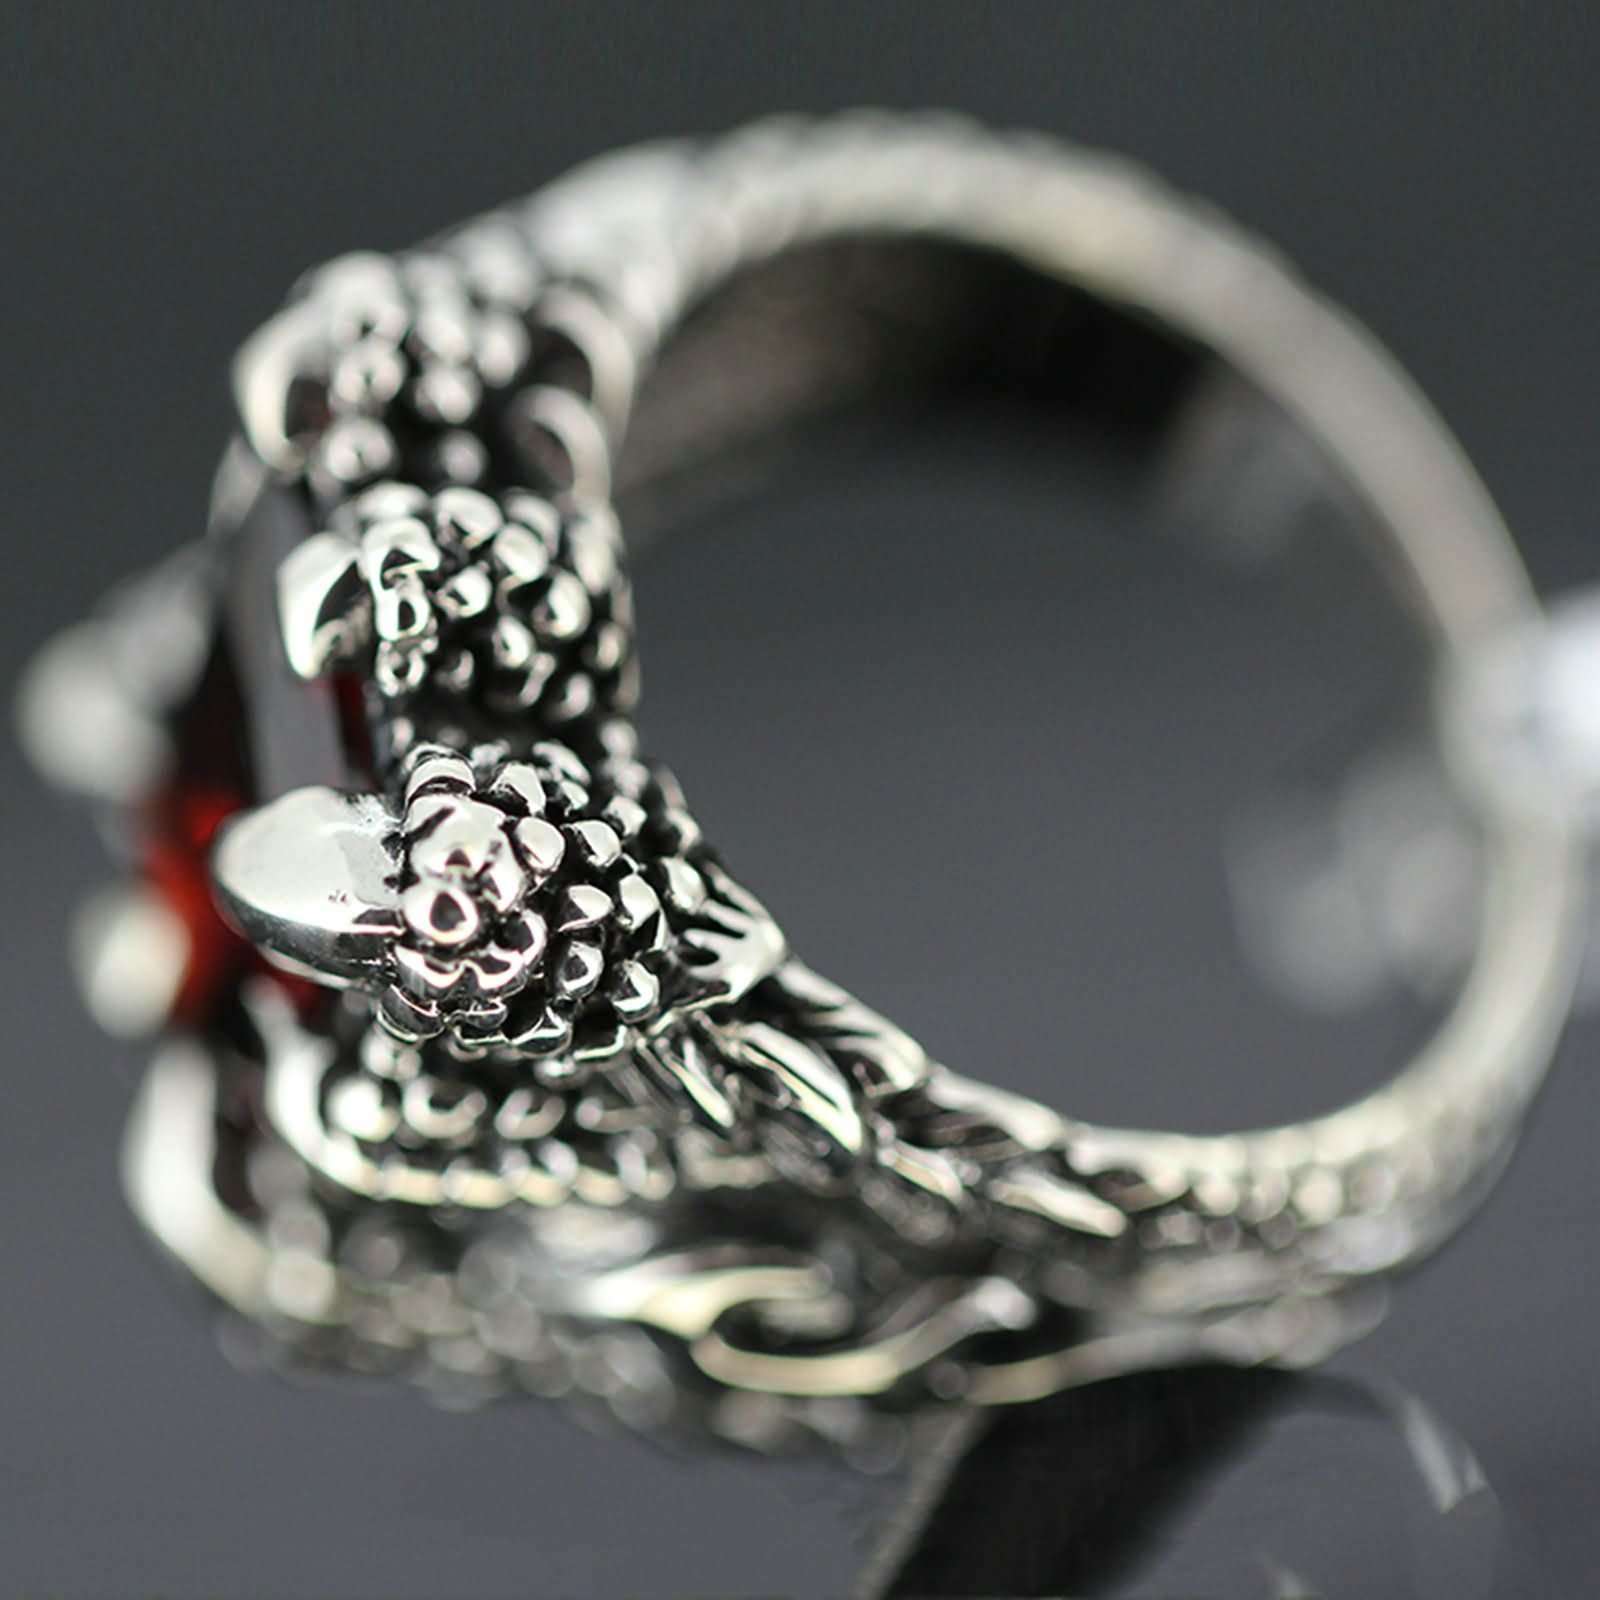 Bishilin Rings for Men Silver Plated Paw with Rectangle Red Gem Partner Rings Silver Size 10 by Bishilin (Image #2)